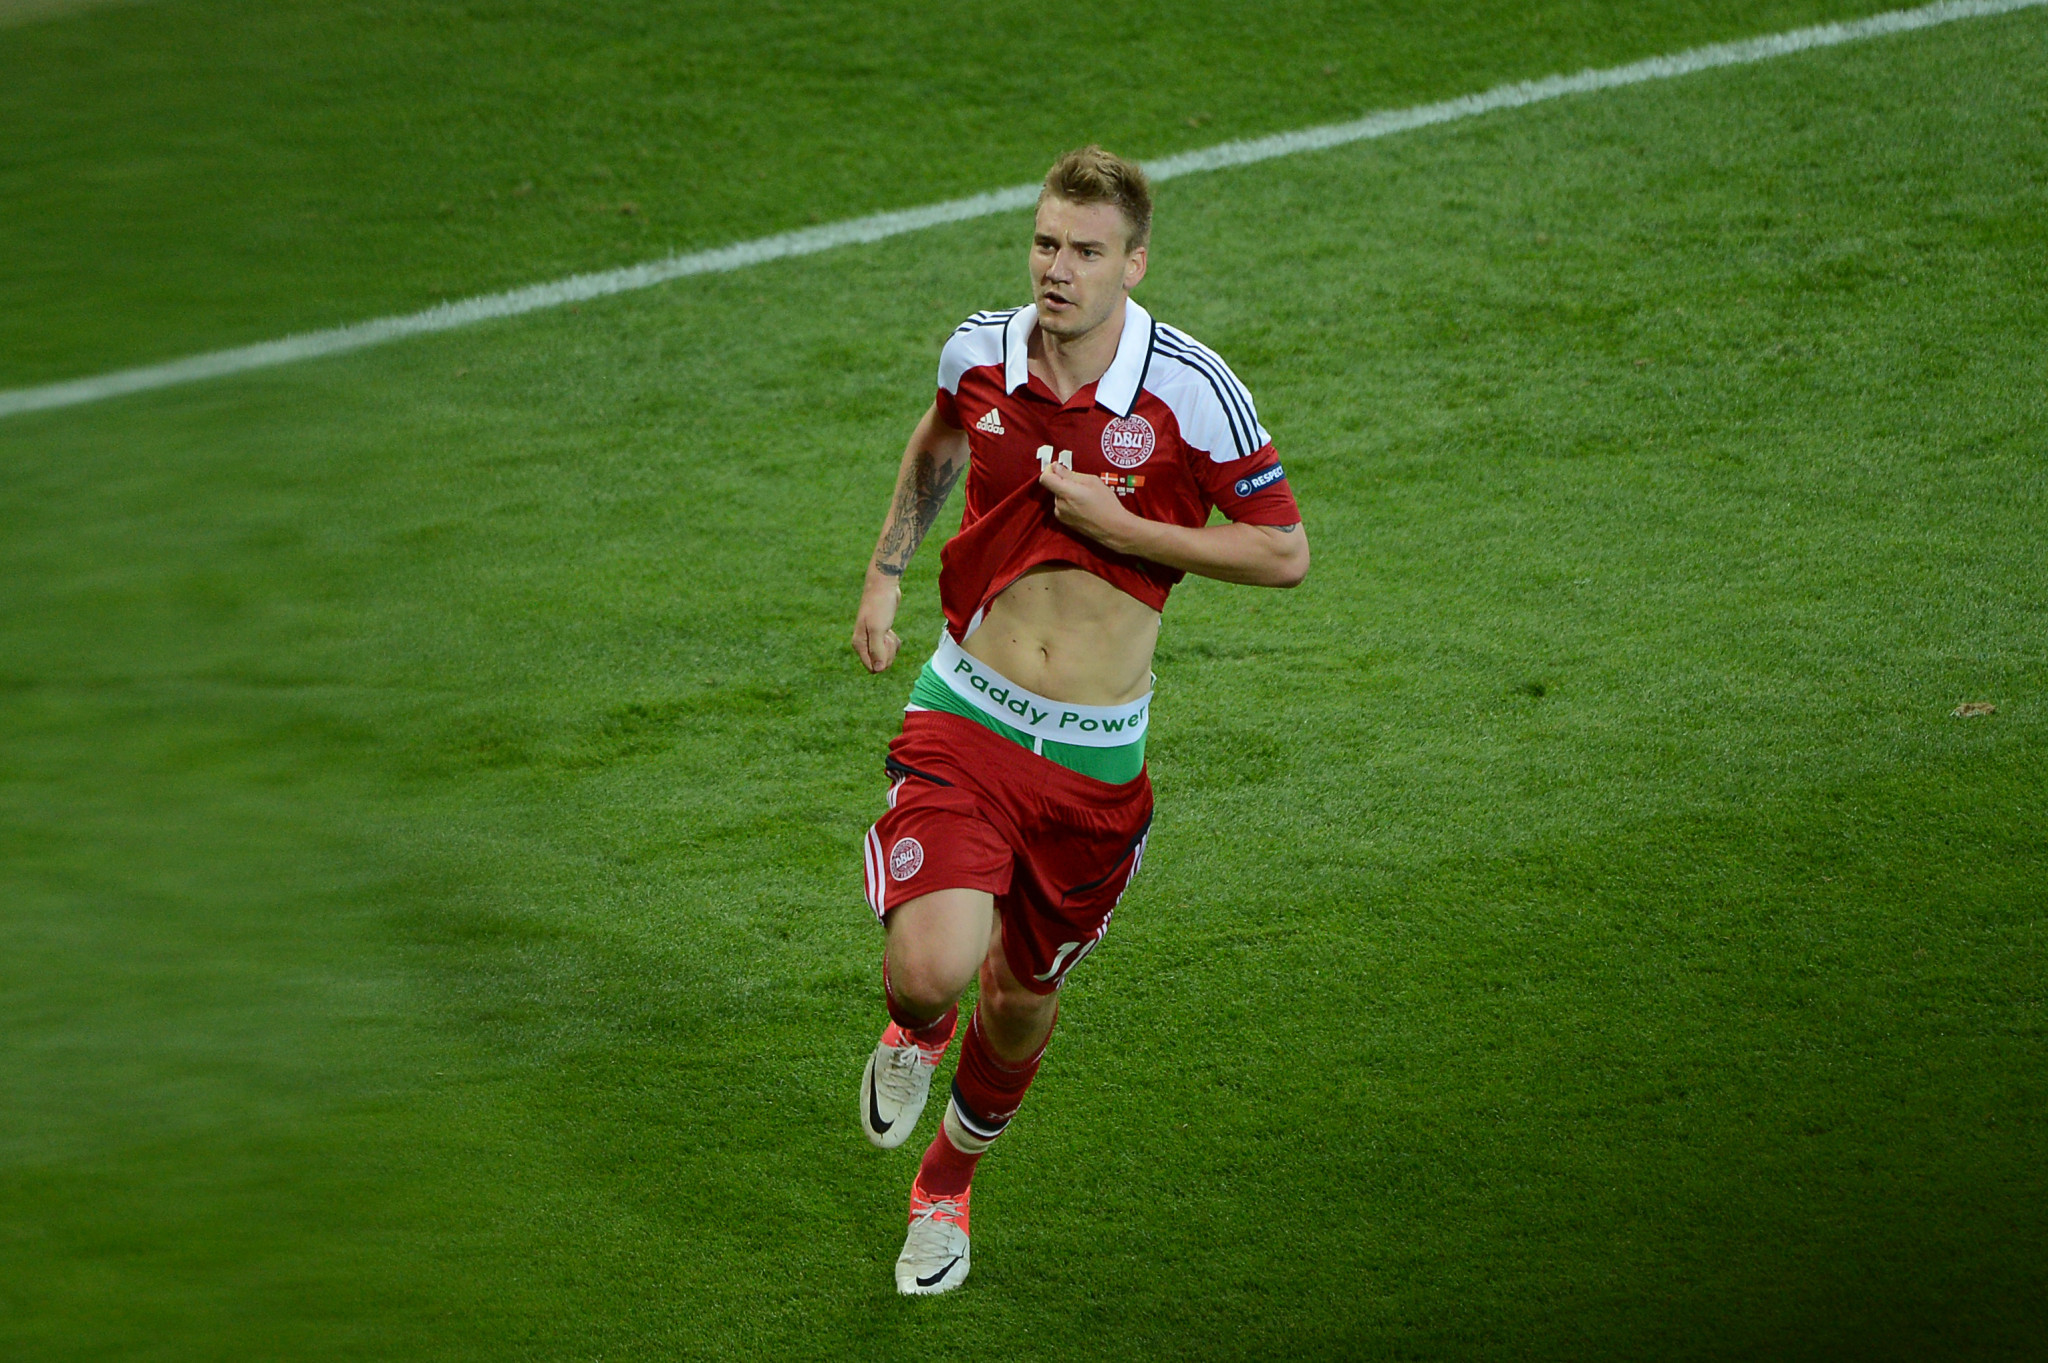 Denmark's Nicklas Bendtner was given a one match ban after exposing underpants promoting a sponsor ©Getty Images